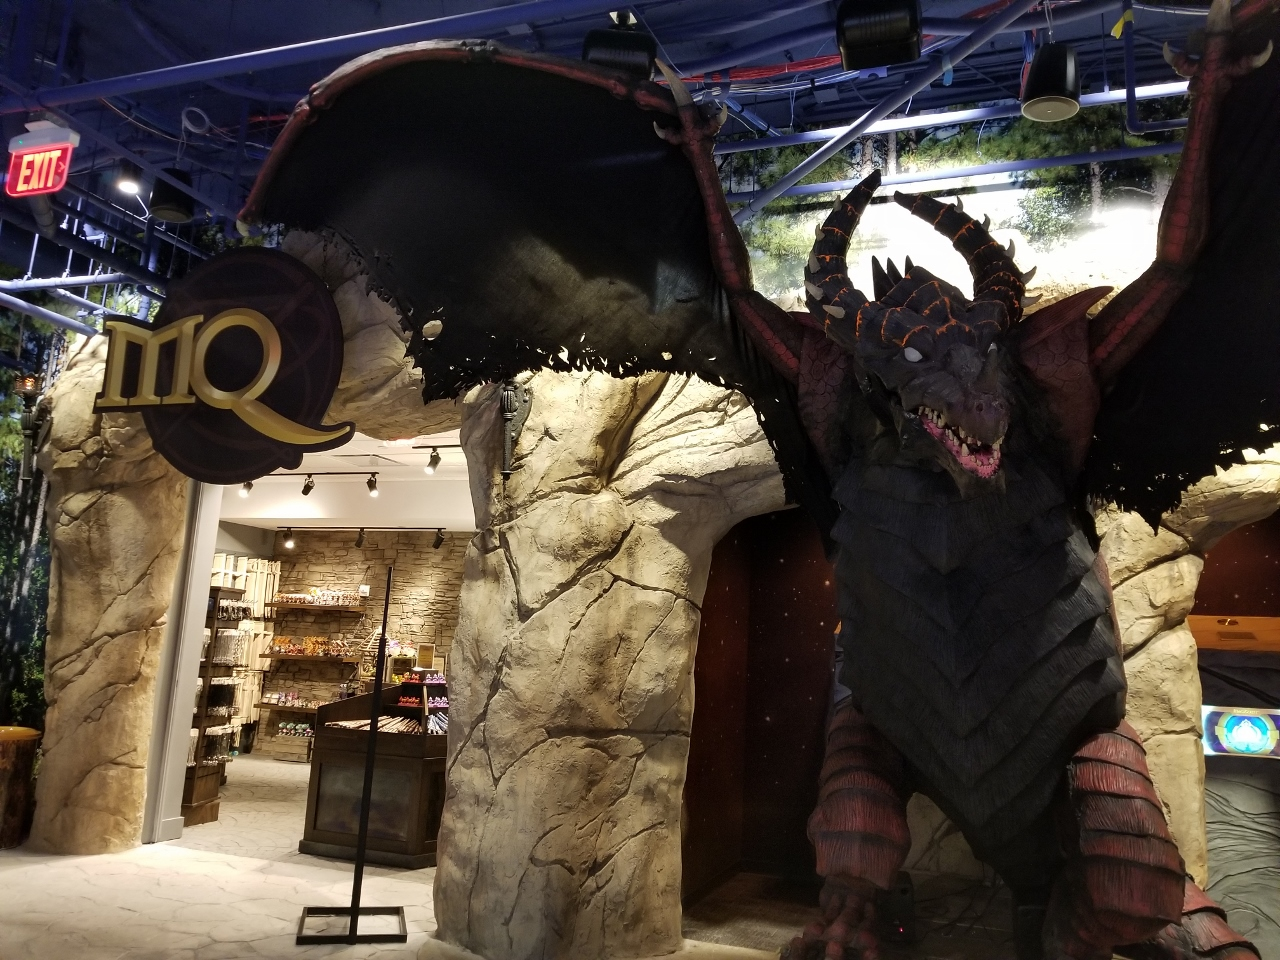 MagiQuest at great wolf lodge in bloomington minnesota